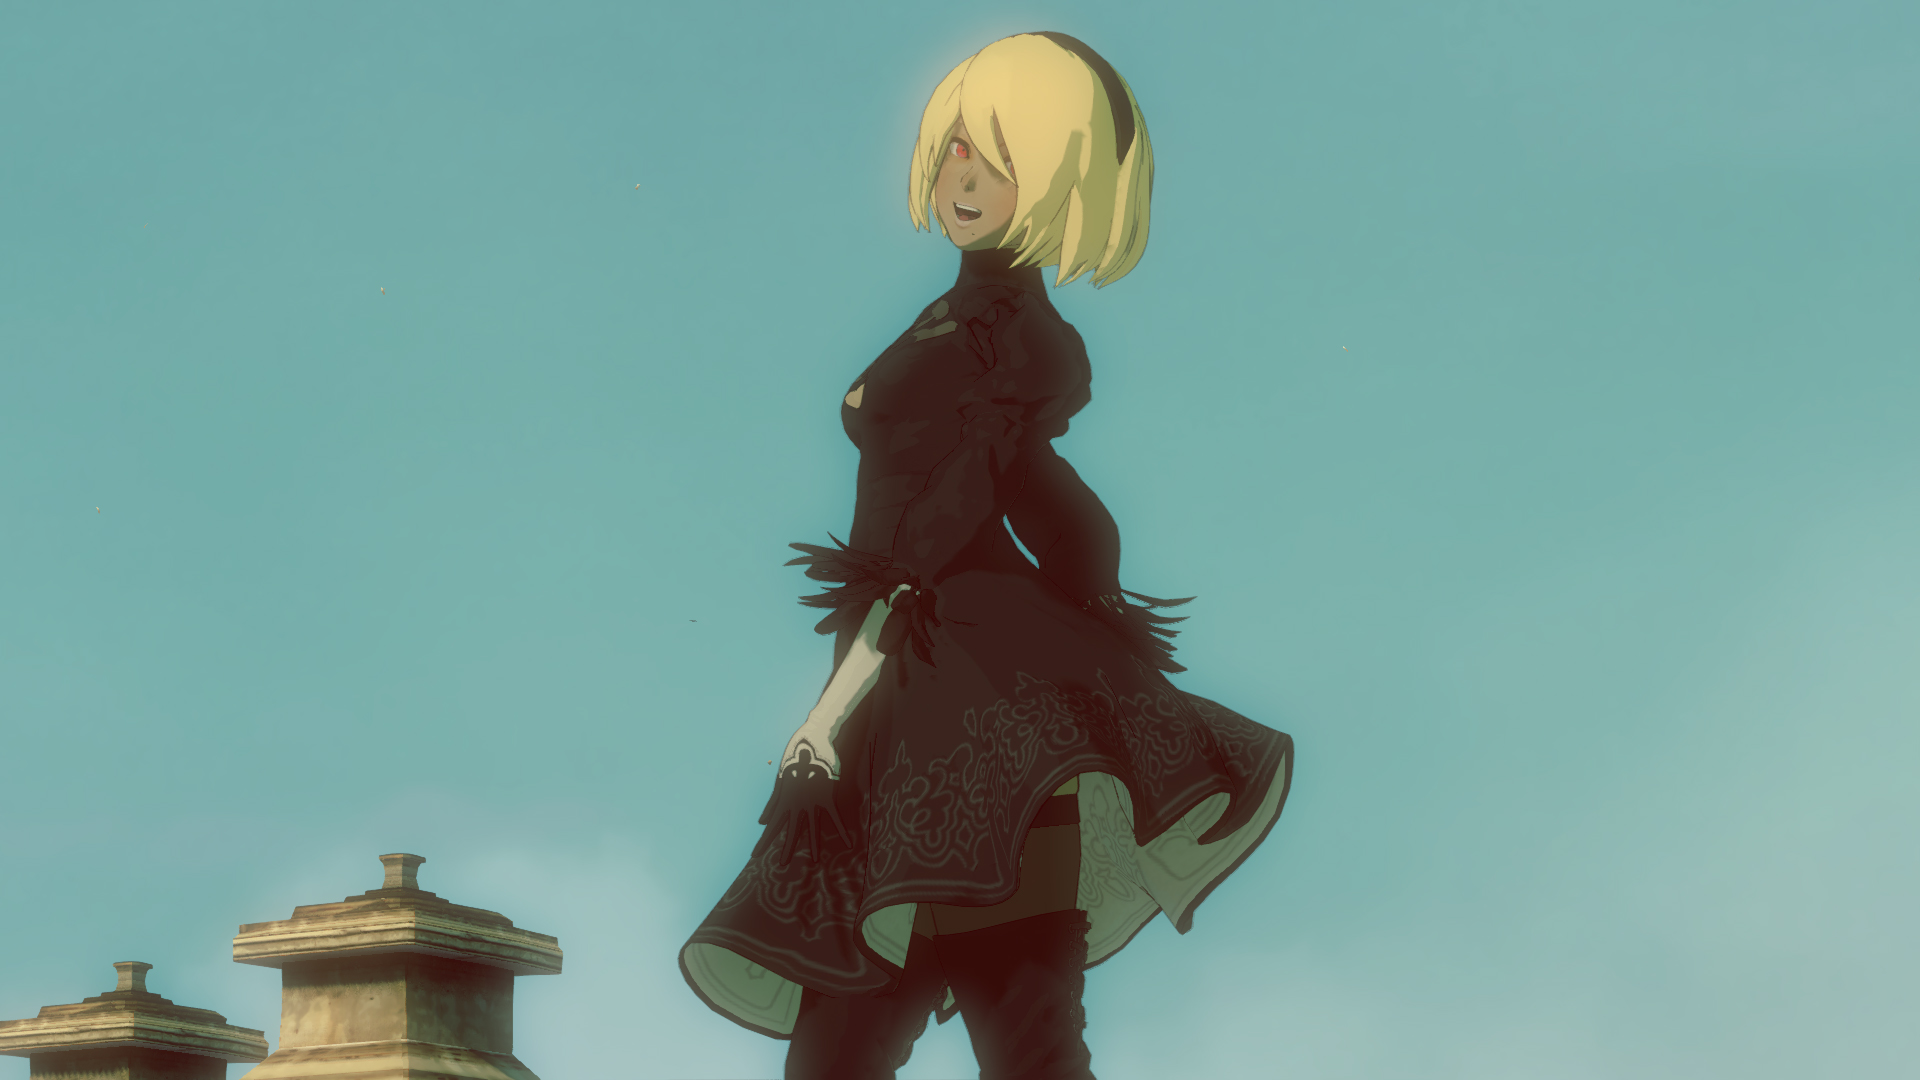 Kat in Gravity Rush 2, wearing her 2B costume (without visor)